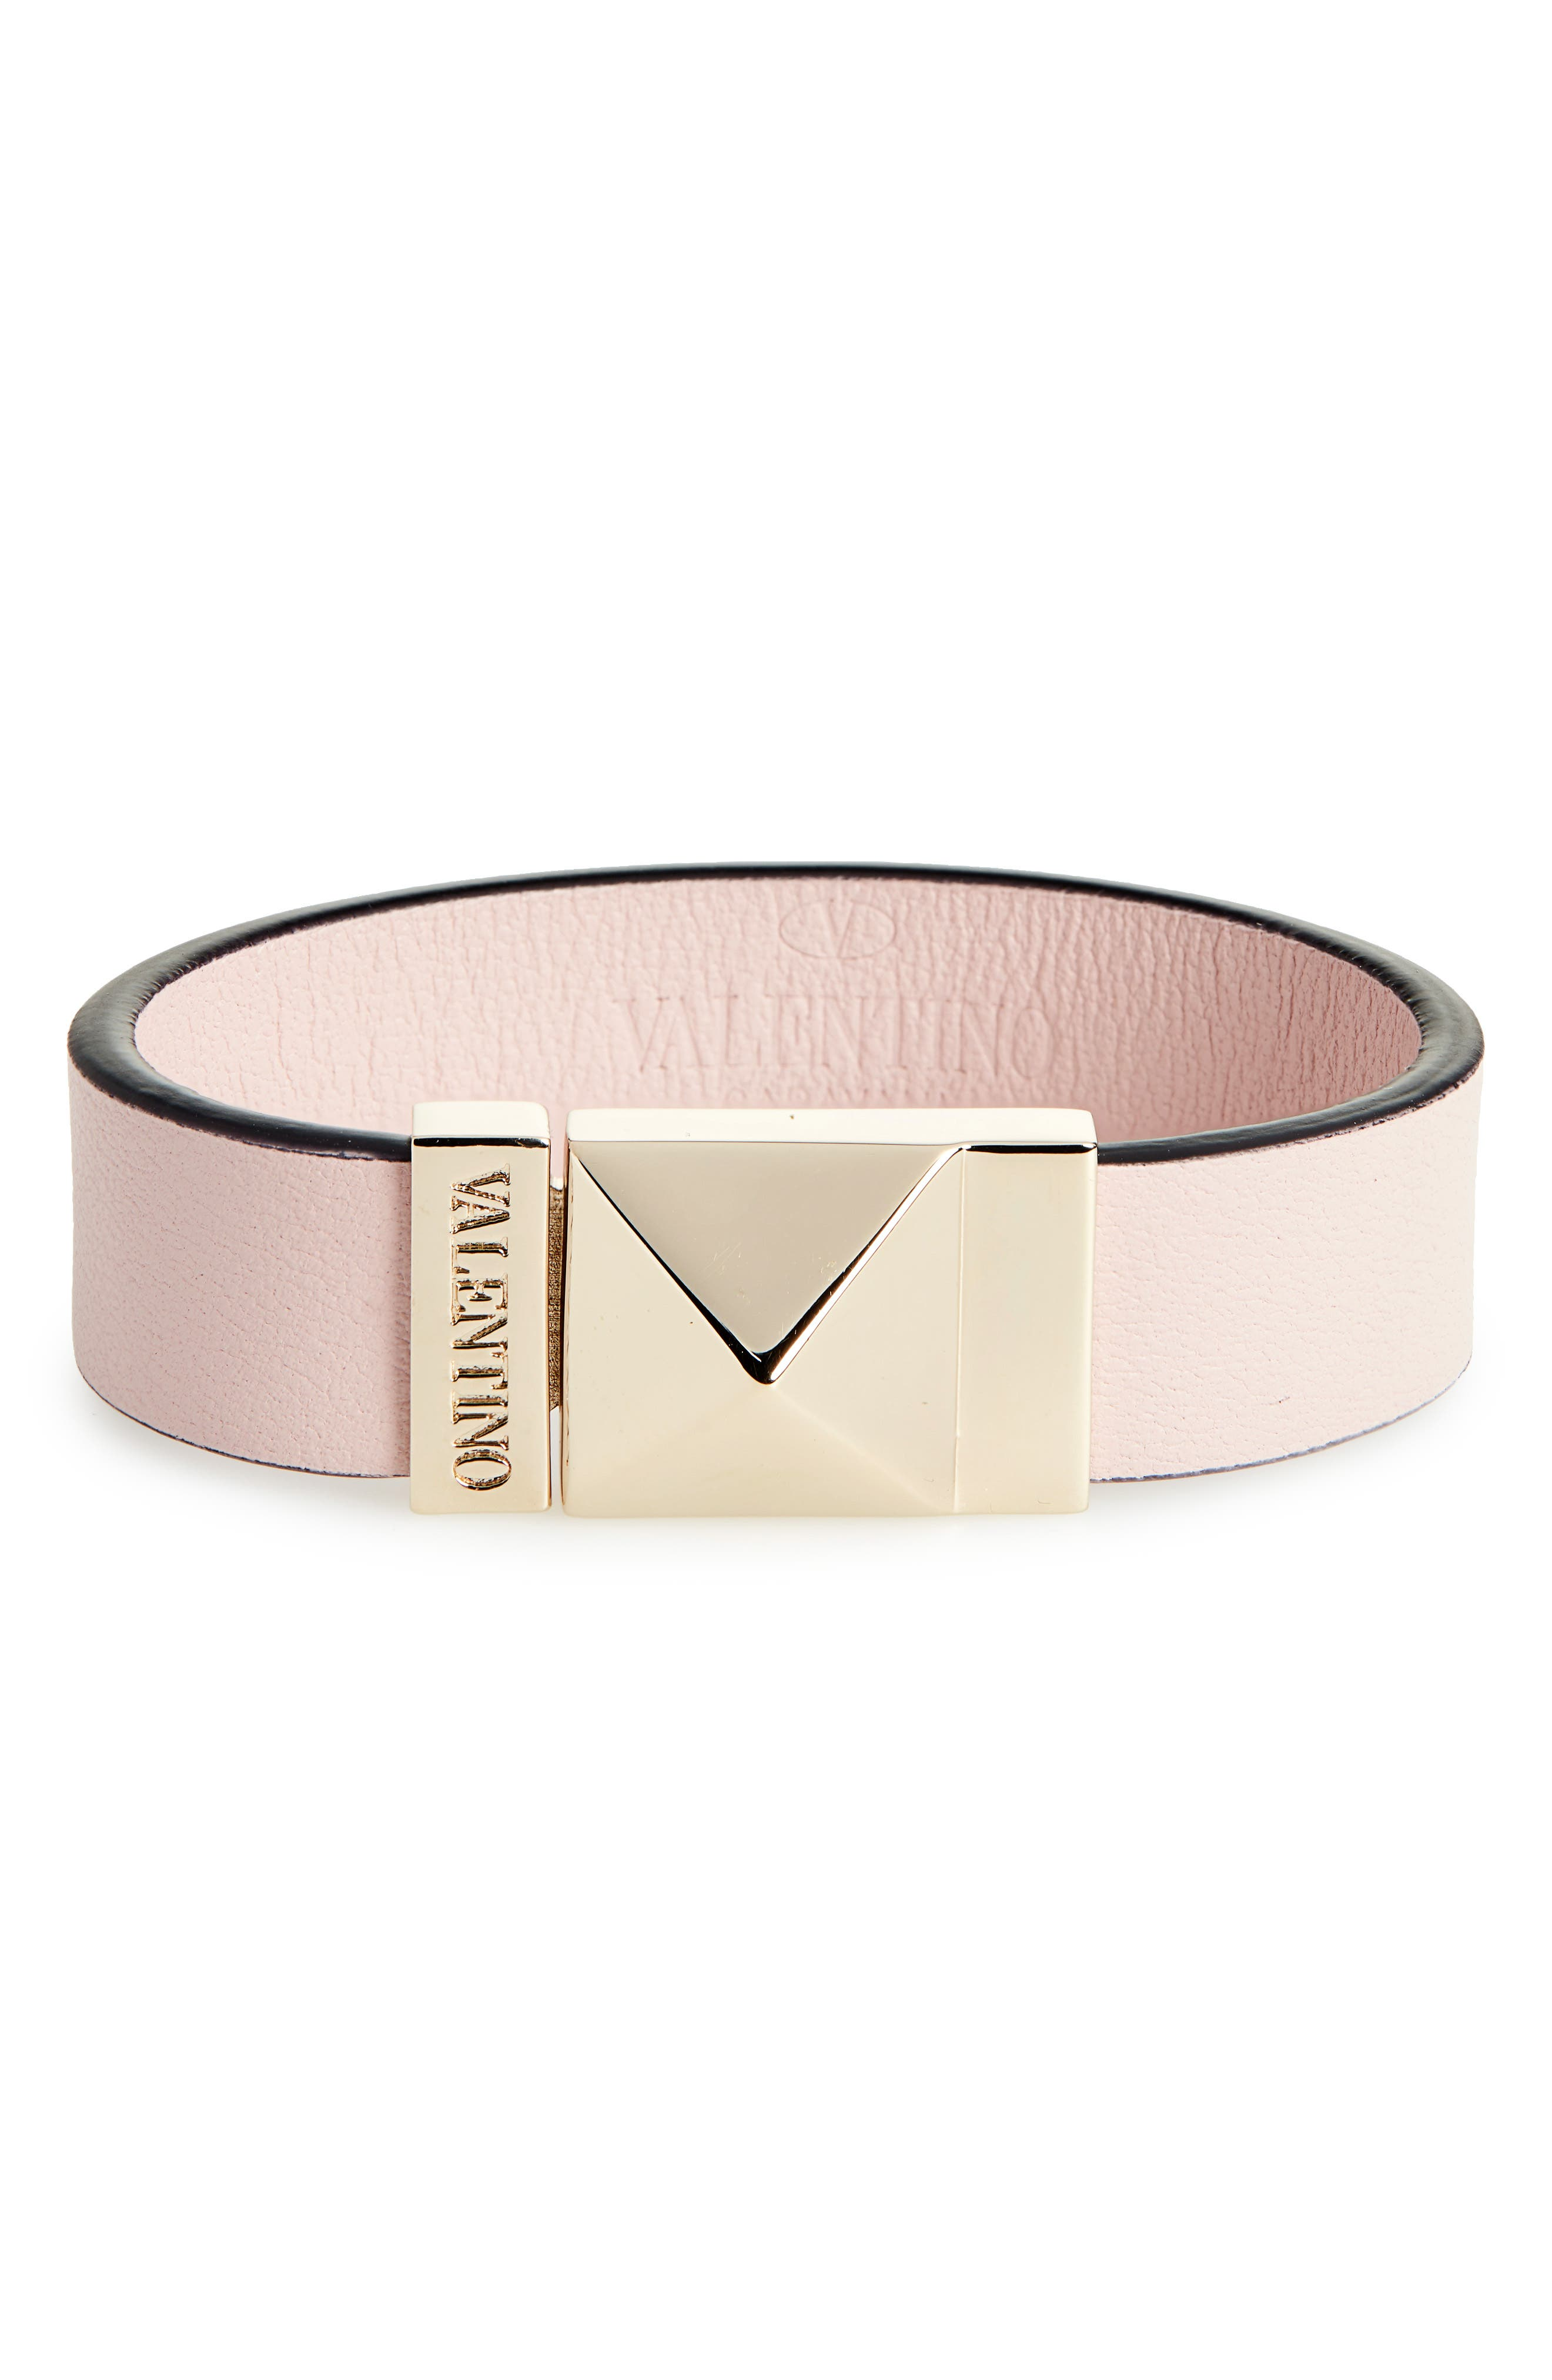 VALENTINO, Small Lock Leather Cuff Bracelet, Main thumbnail 1, color, WATER ROSE